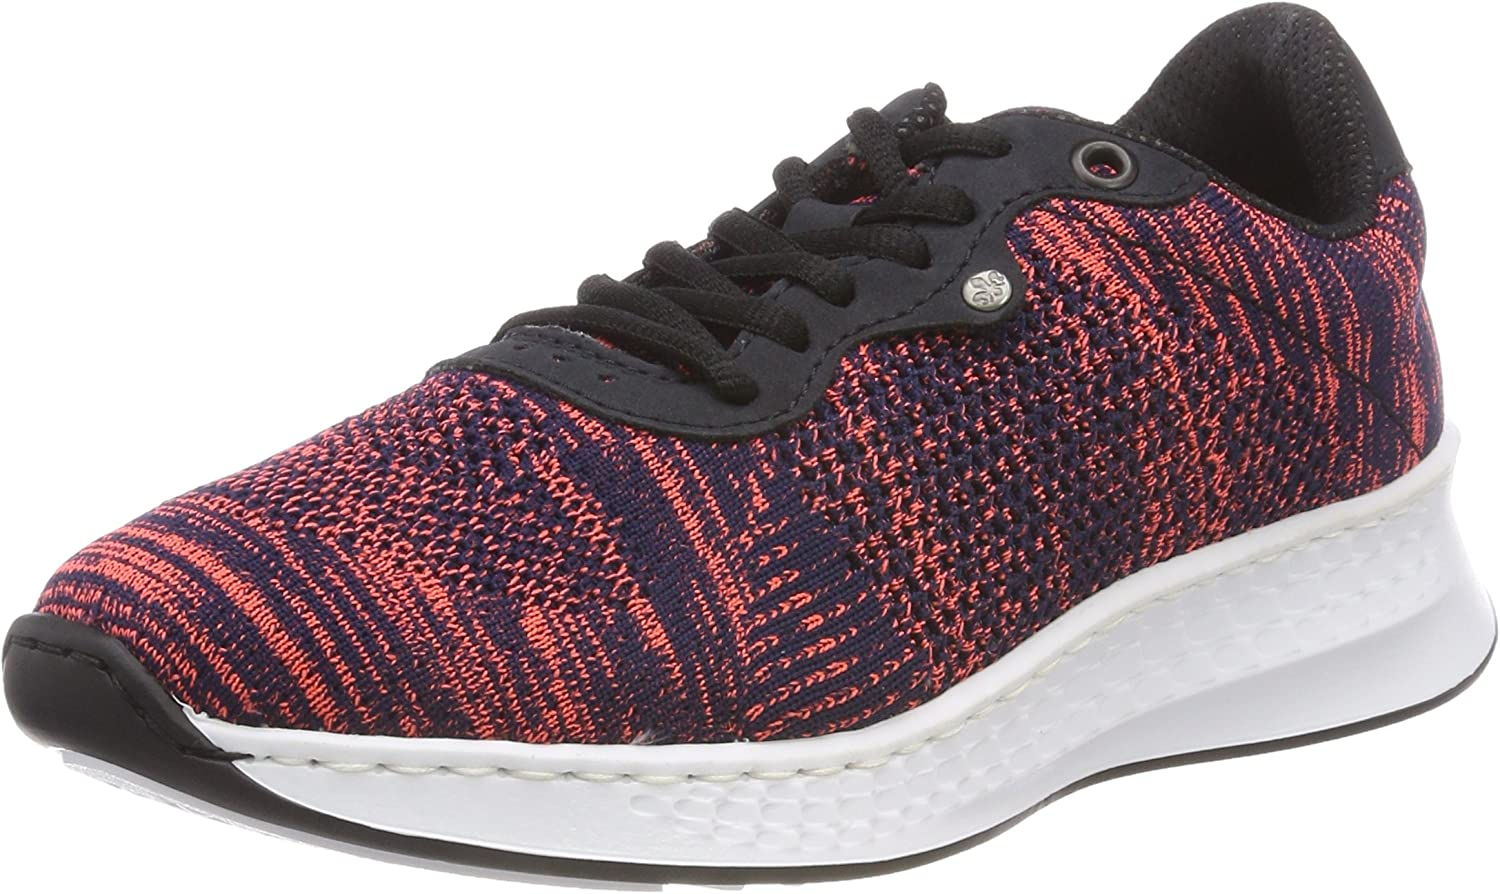 Rieker N5605-90 Navy (Textile) Womens Trainers